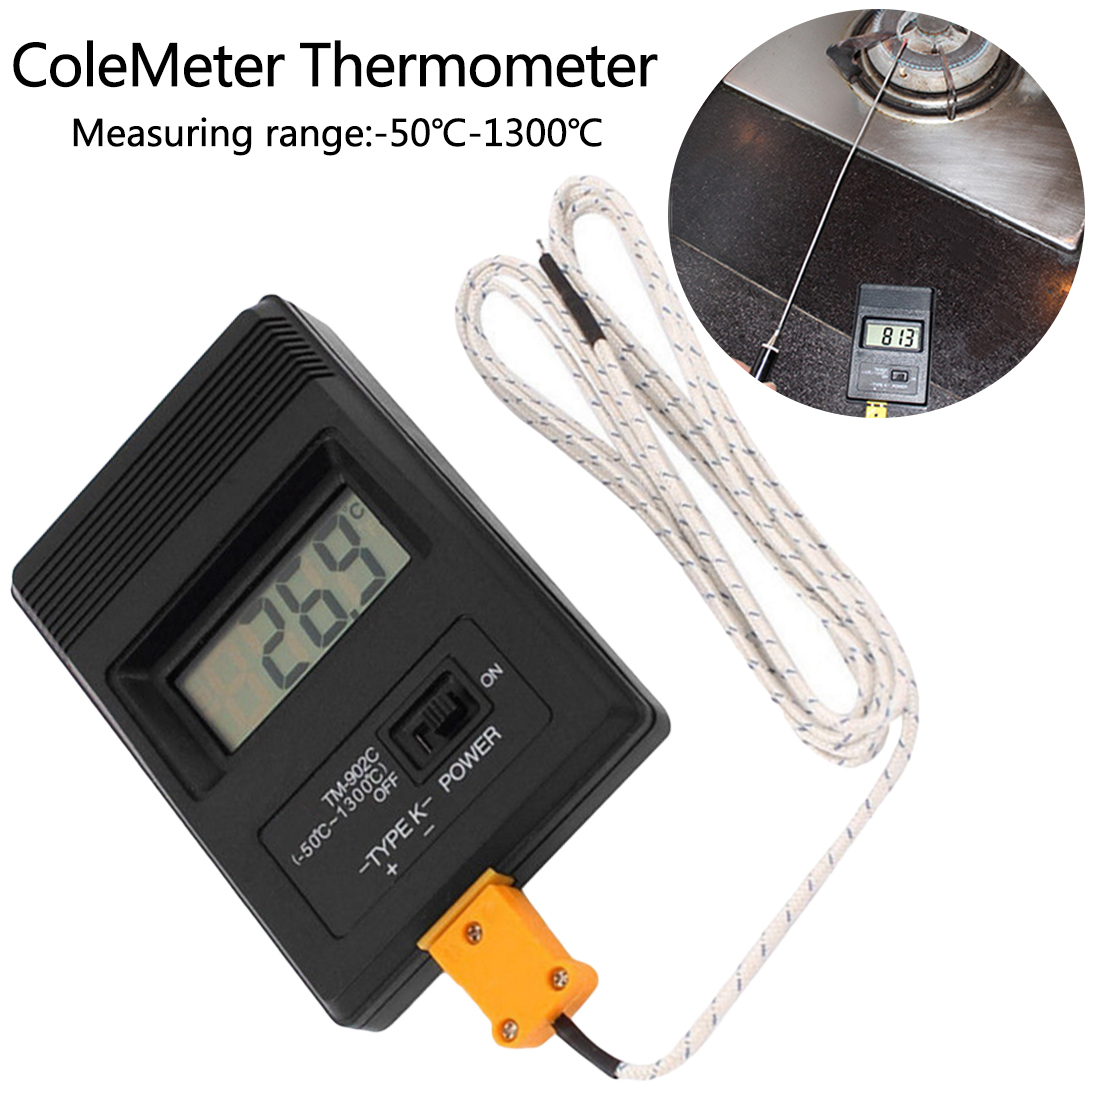 Infrarot <font><b>thermometer</b></font> TM-902C Digital LCD <font><b>K</b></font> Typ <font><b>Thermometer</b></font> mit Thermoelement Sonde Hohe temperatur erkennung image